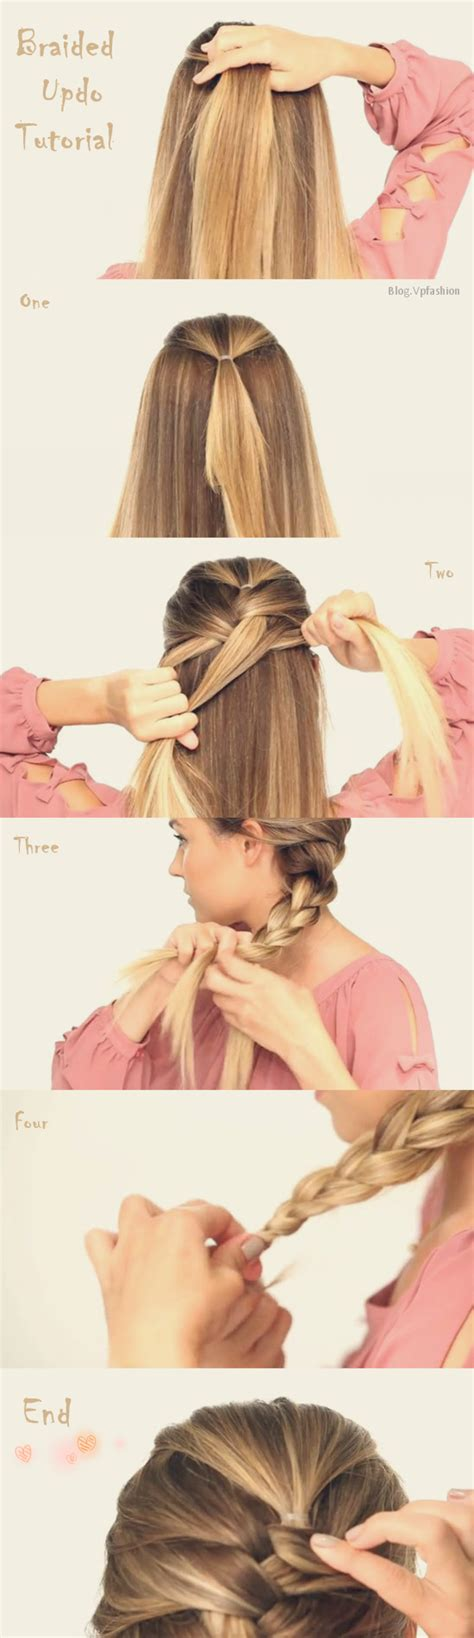 how to braid extensions into your own hair french braided updo archives vpfashion vpfashion